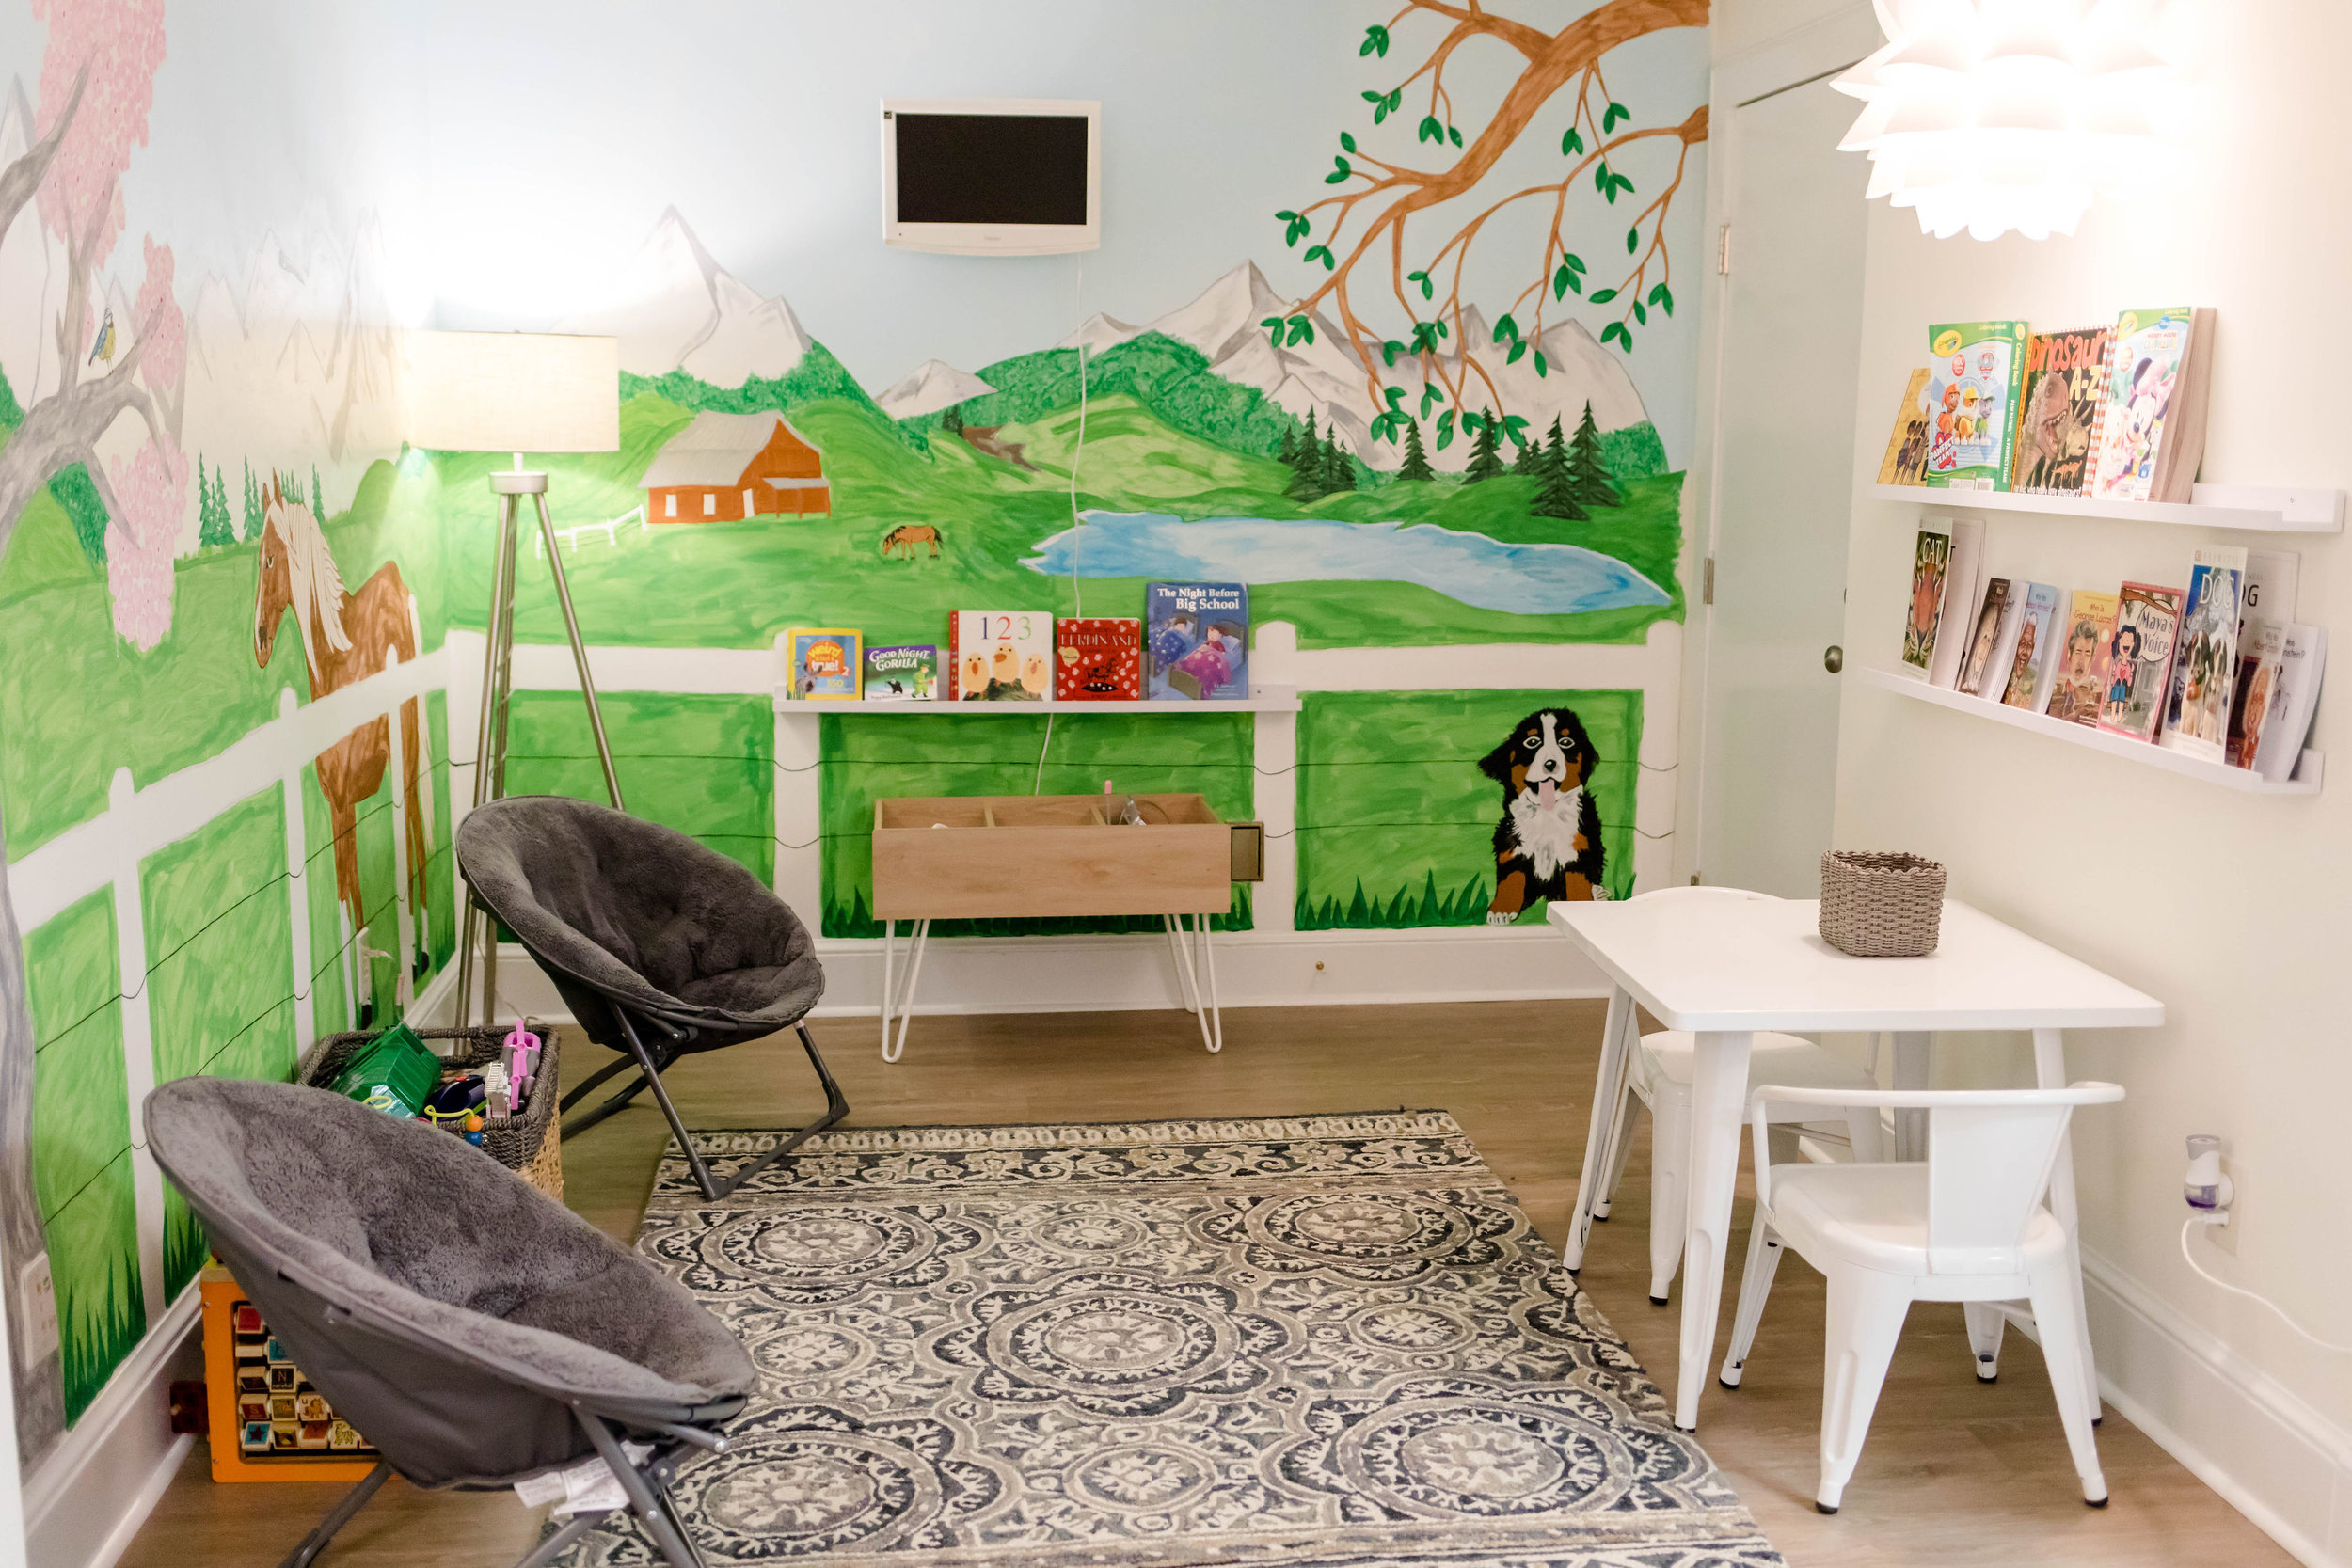 Our Children's Waiting Room